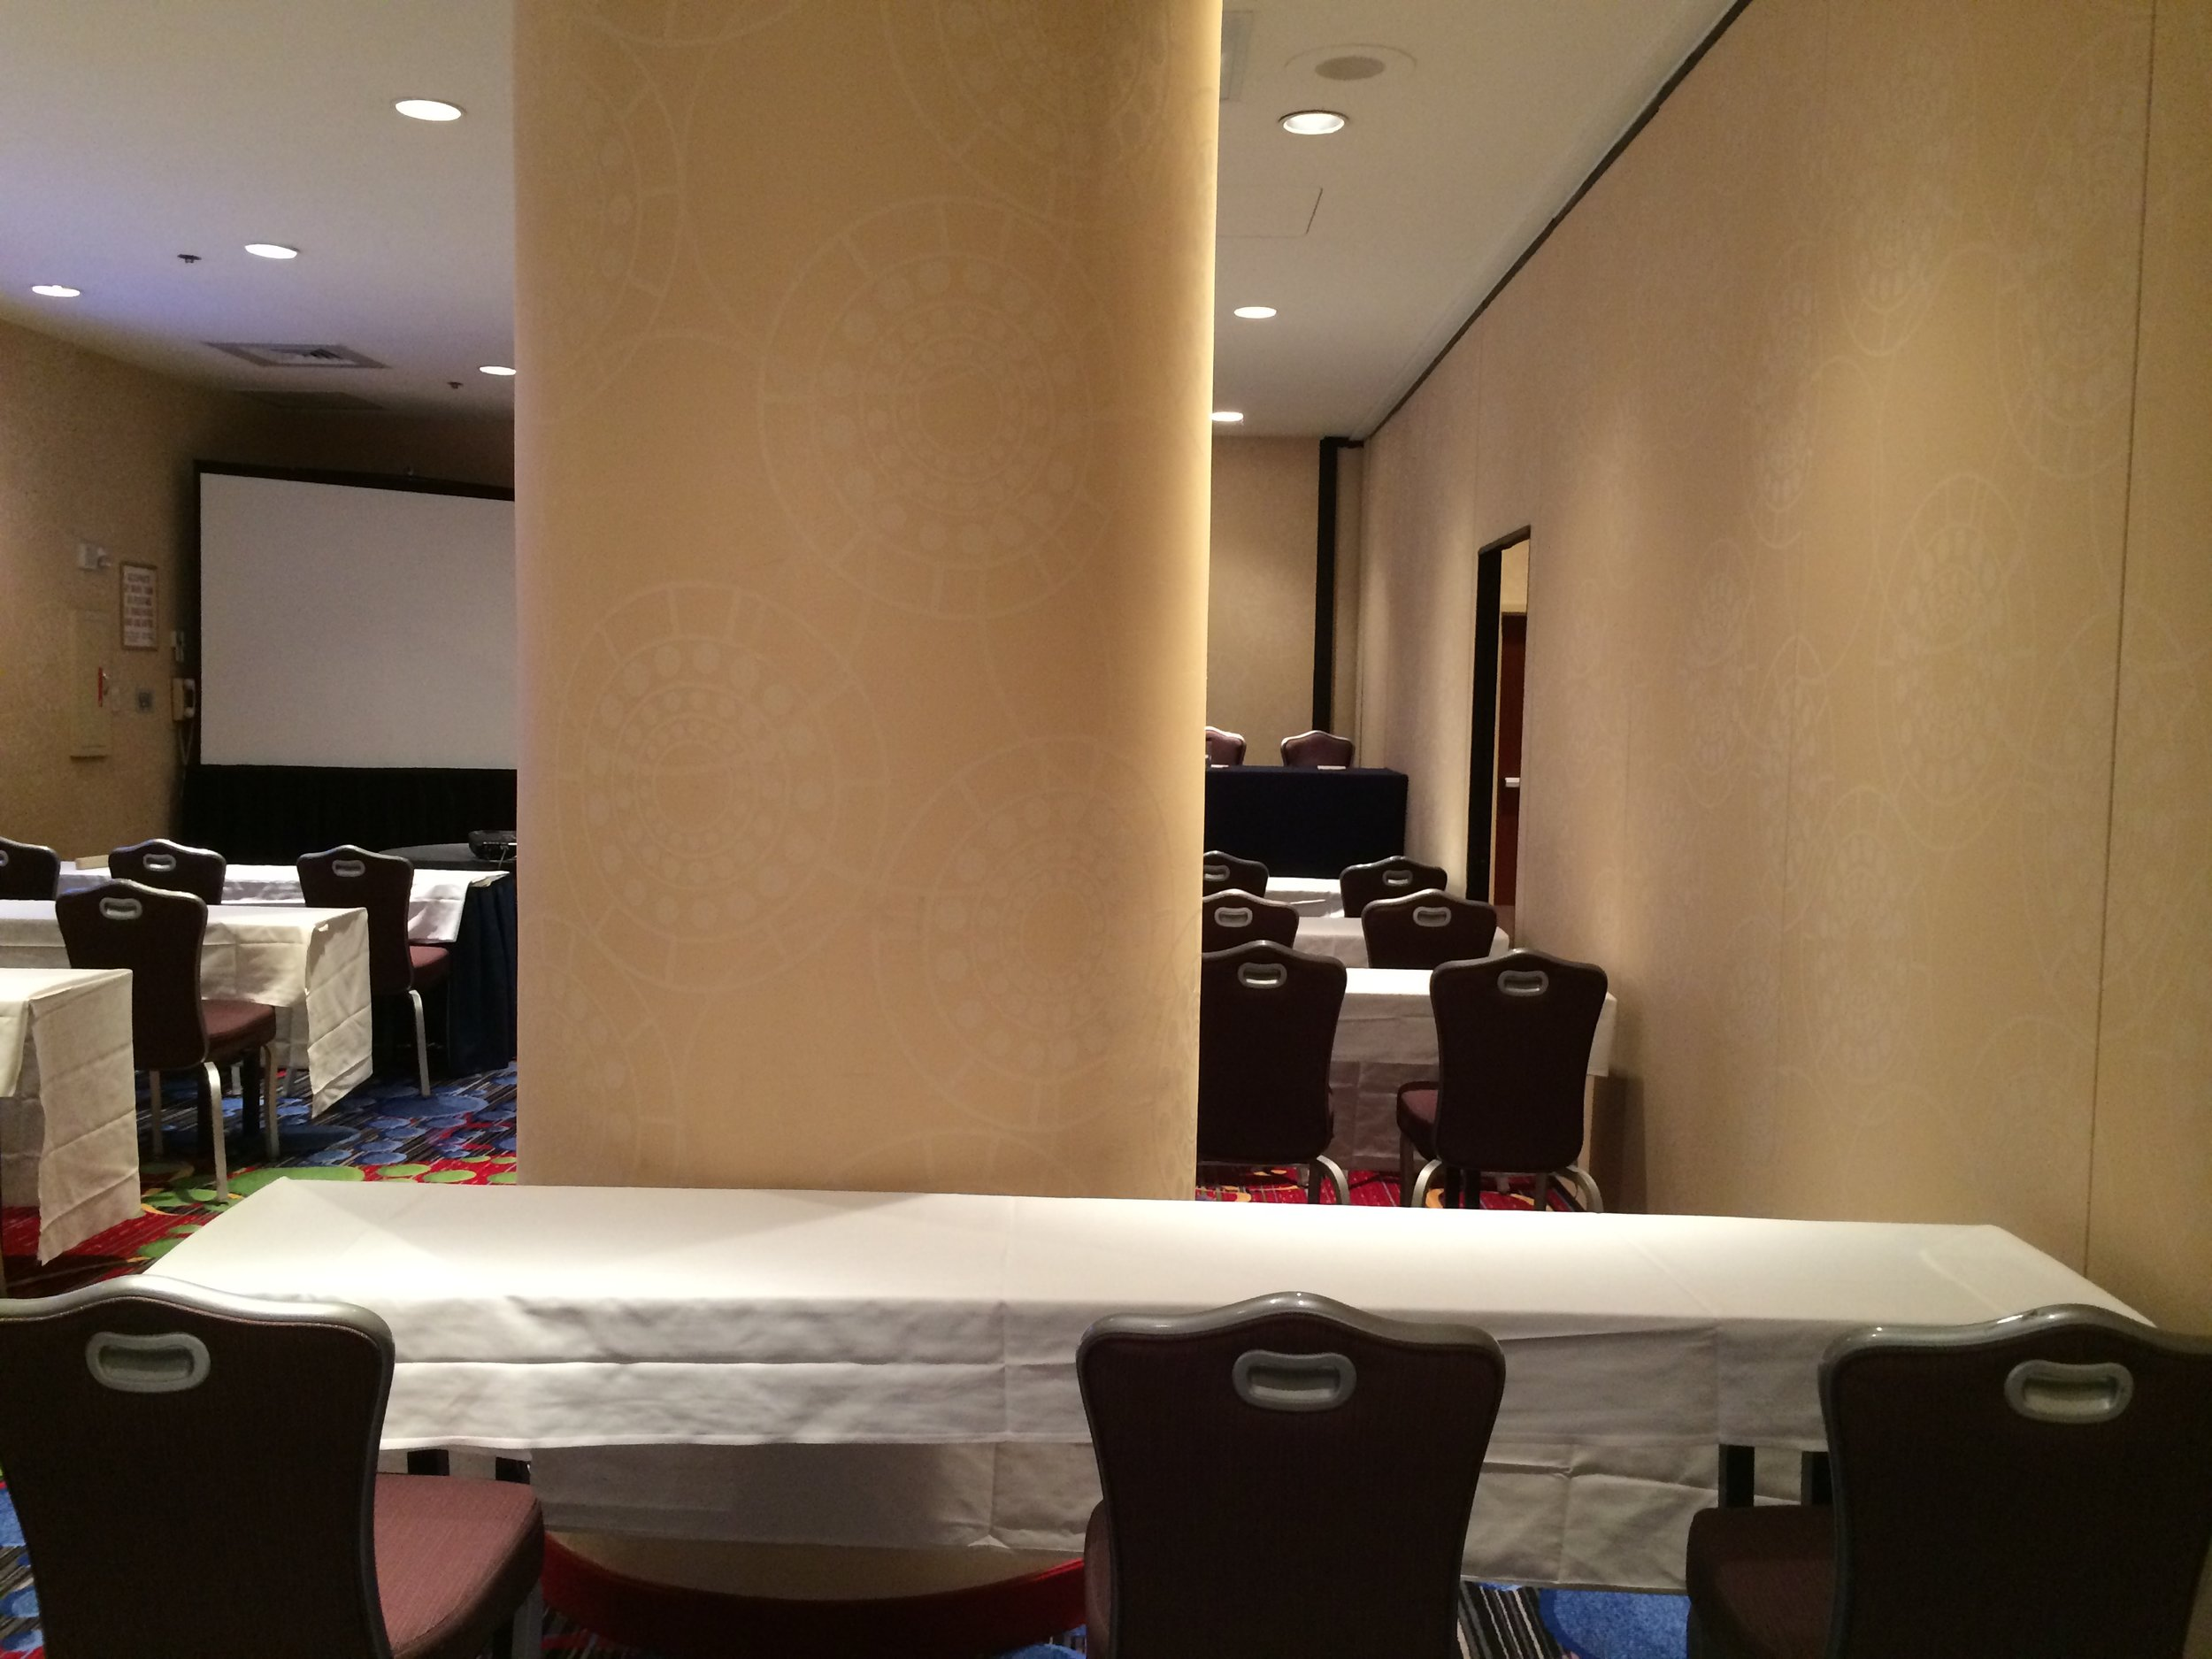 A large pillar blocks the view of participants in a hotel conference room.